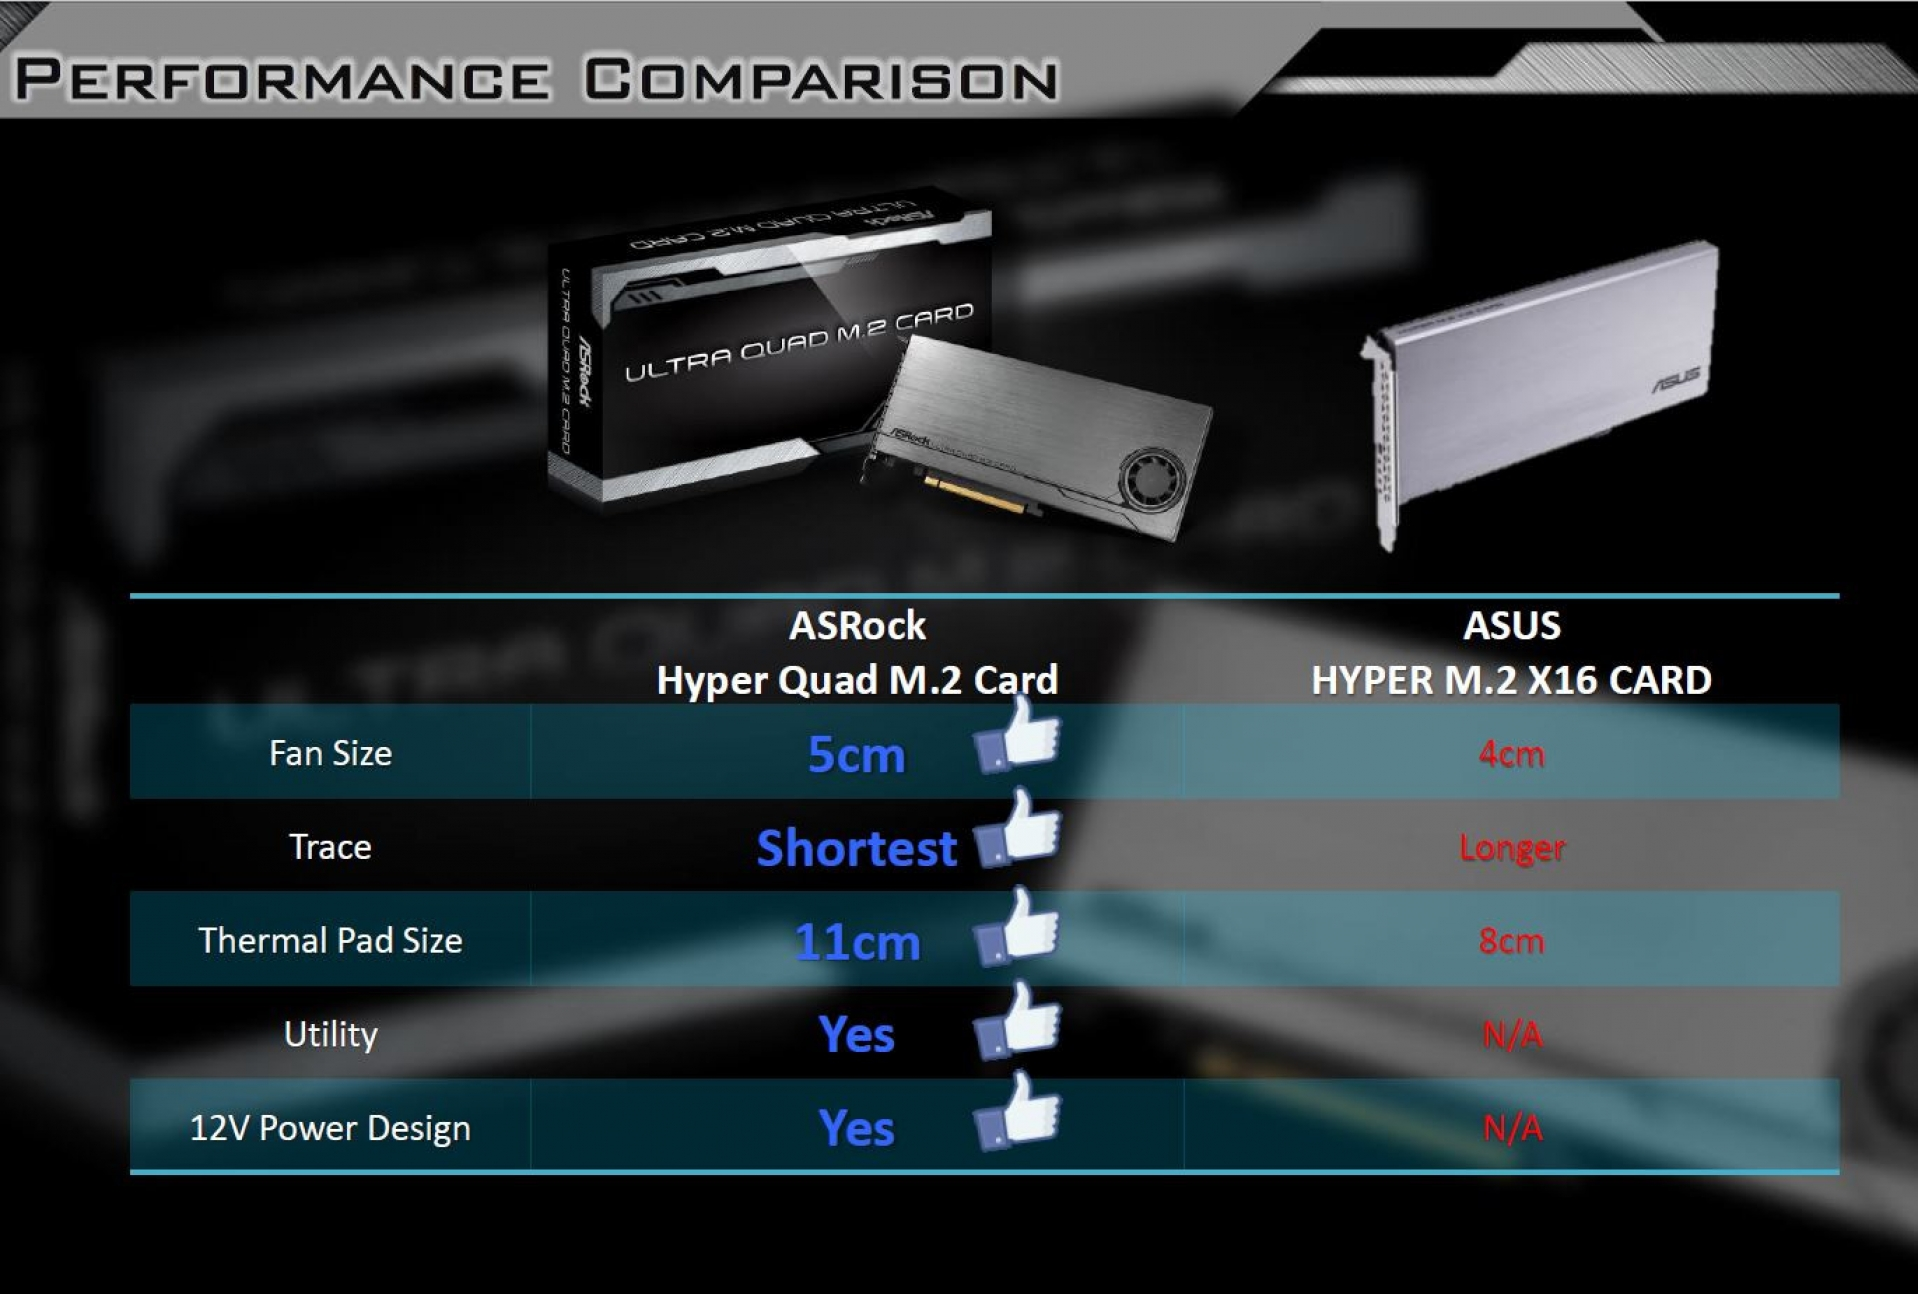 ASRock reveals Ultra Quad M 2 card - Takes aim at ASUS | OC3D News